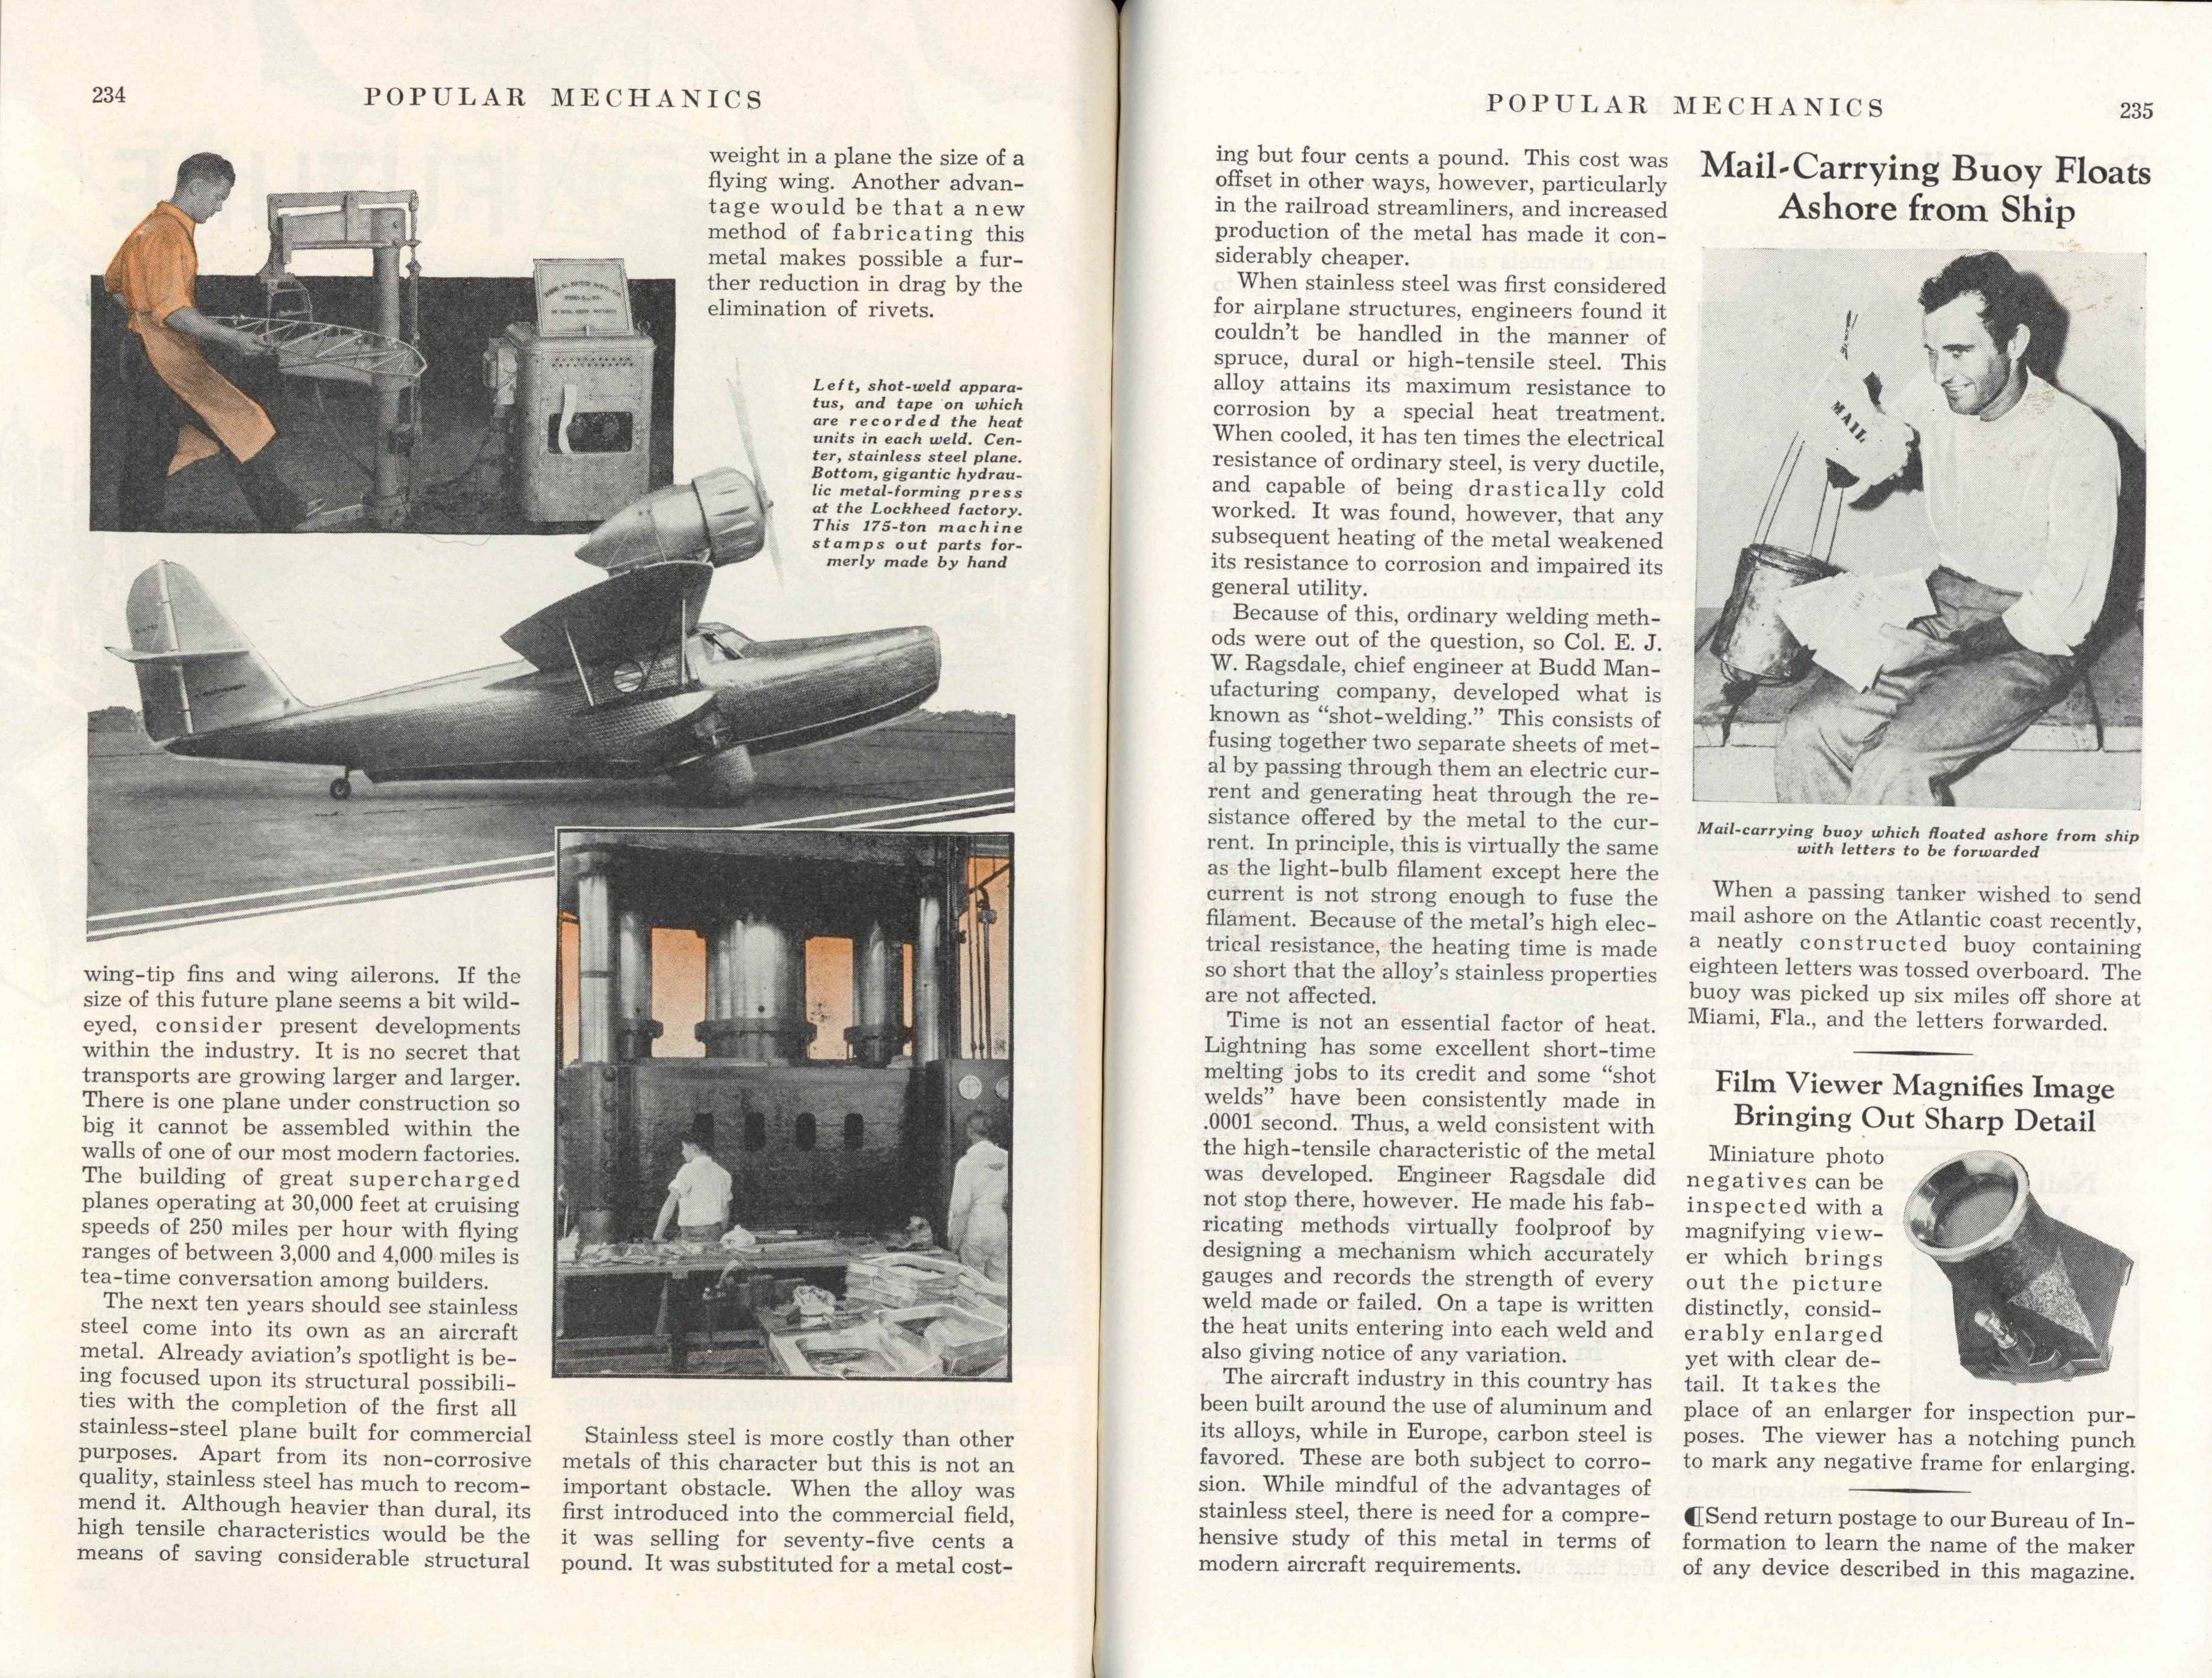 1938 2 THE FLYING WING of the FUTURE By Hall J  Hibbard, Chief